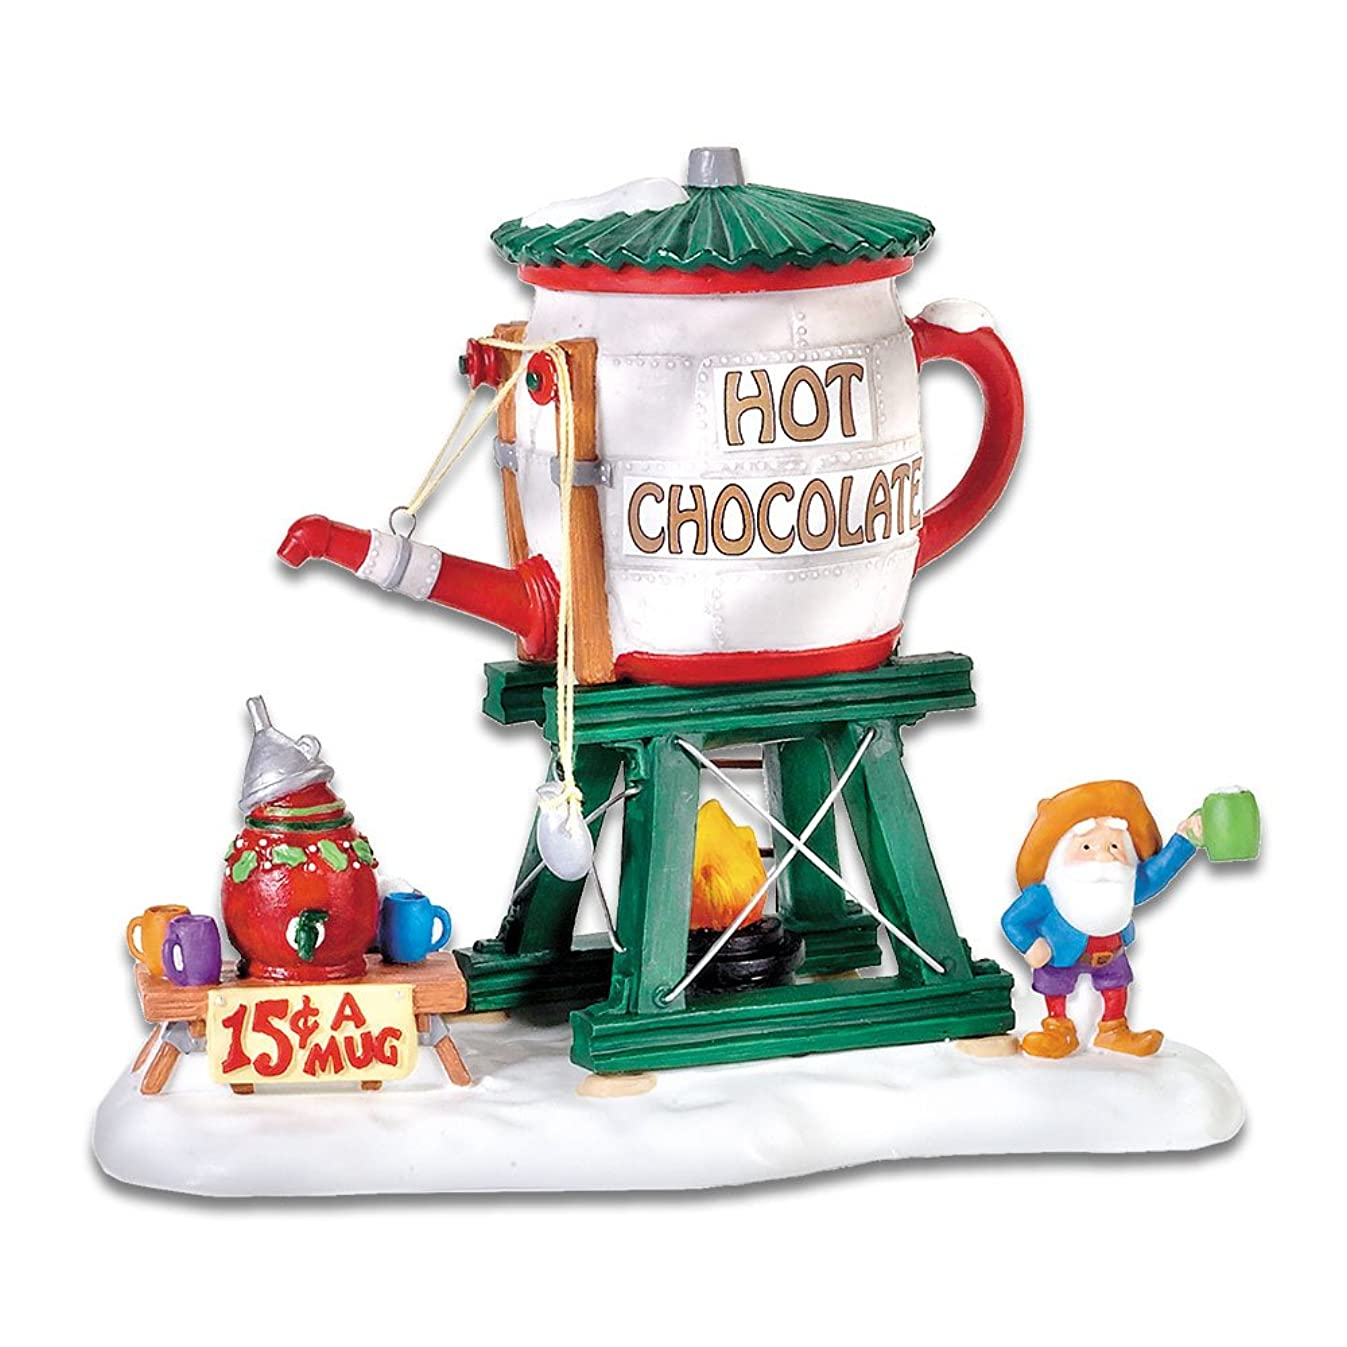 Department 56 North Pole Village Hot Chocolate Tower Accessory Figurine